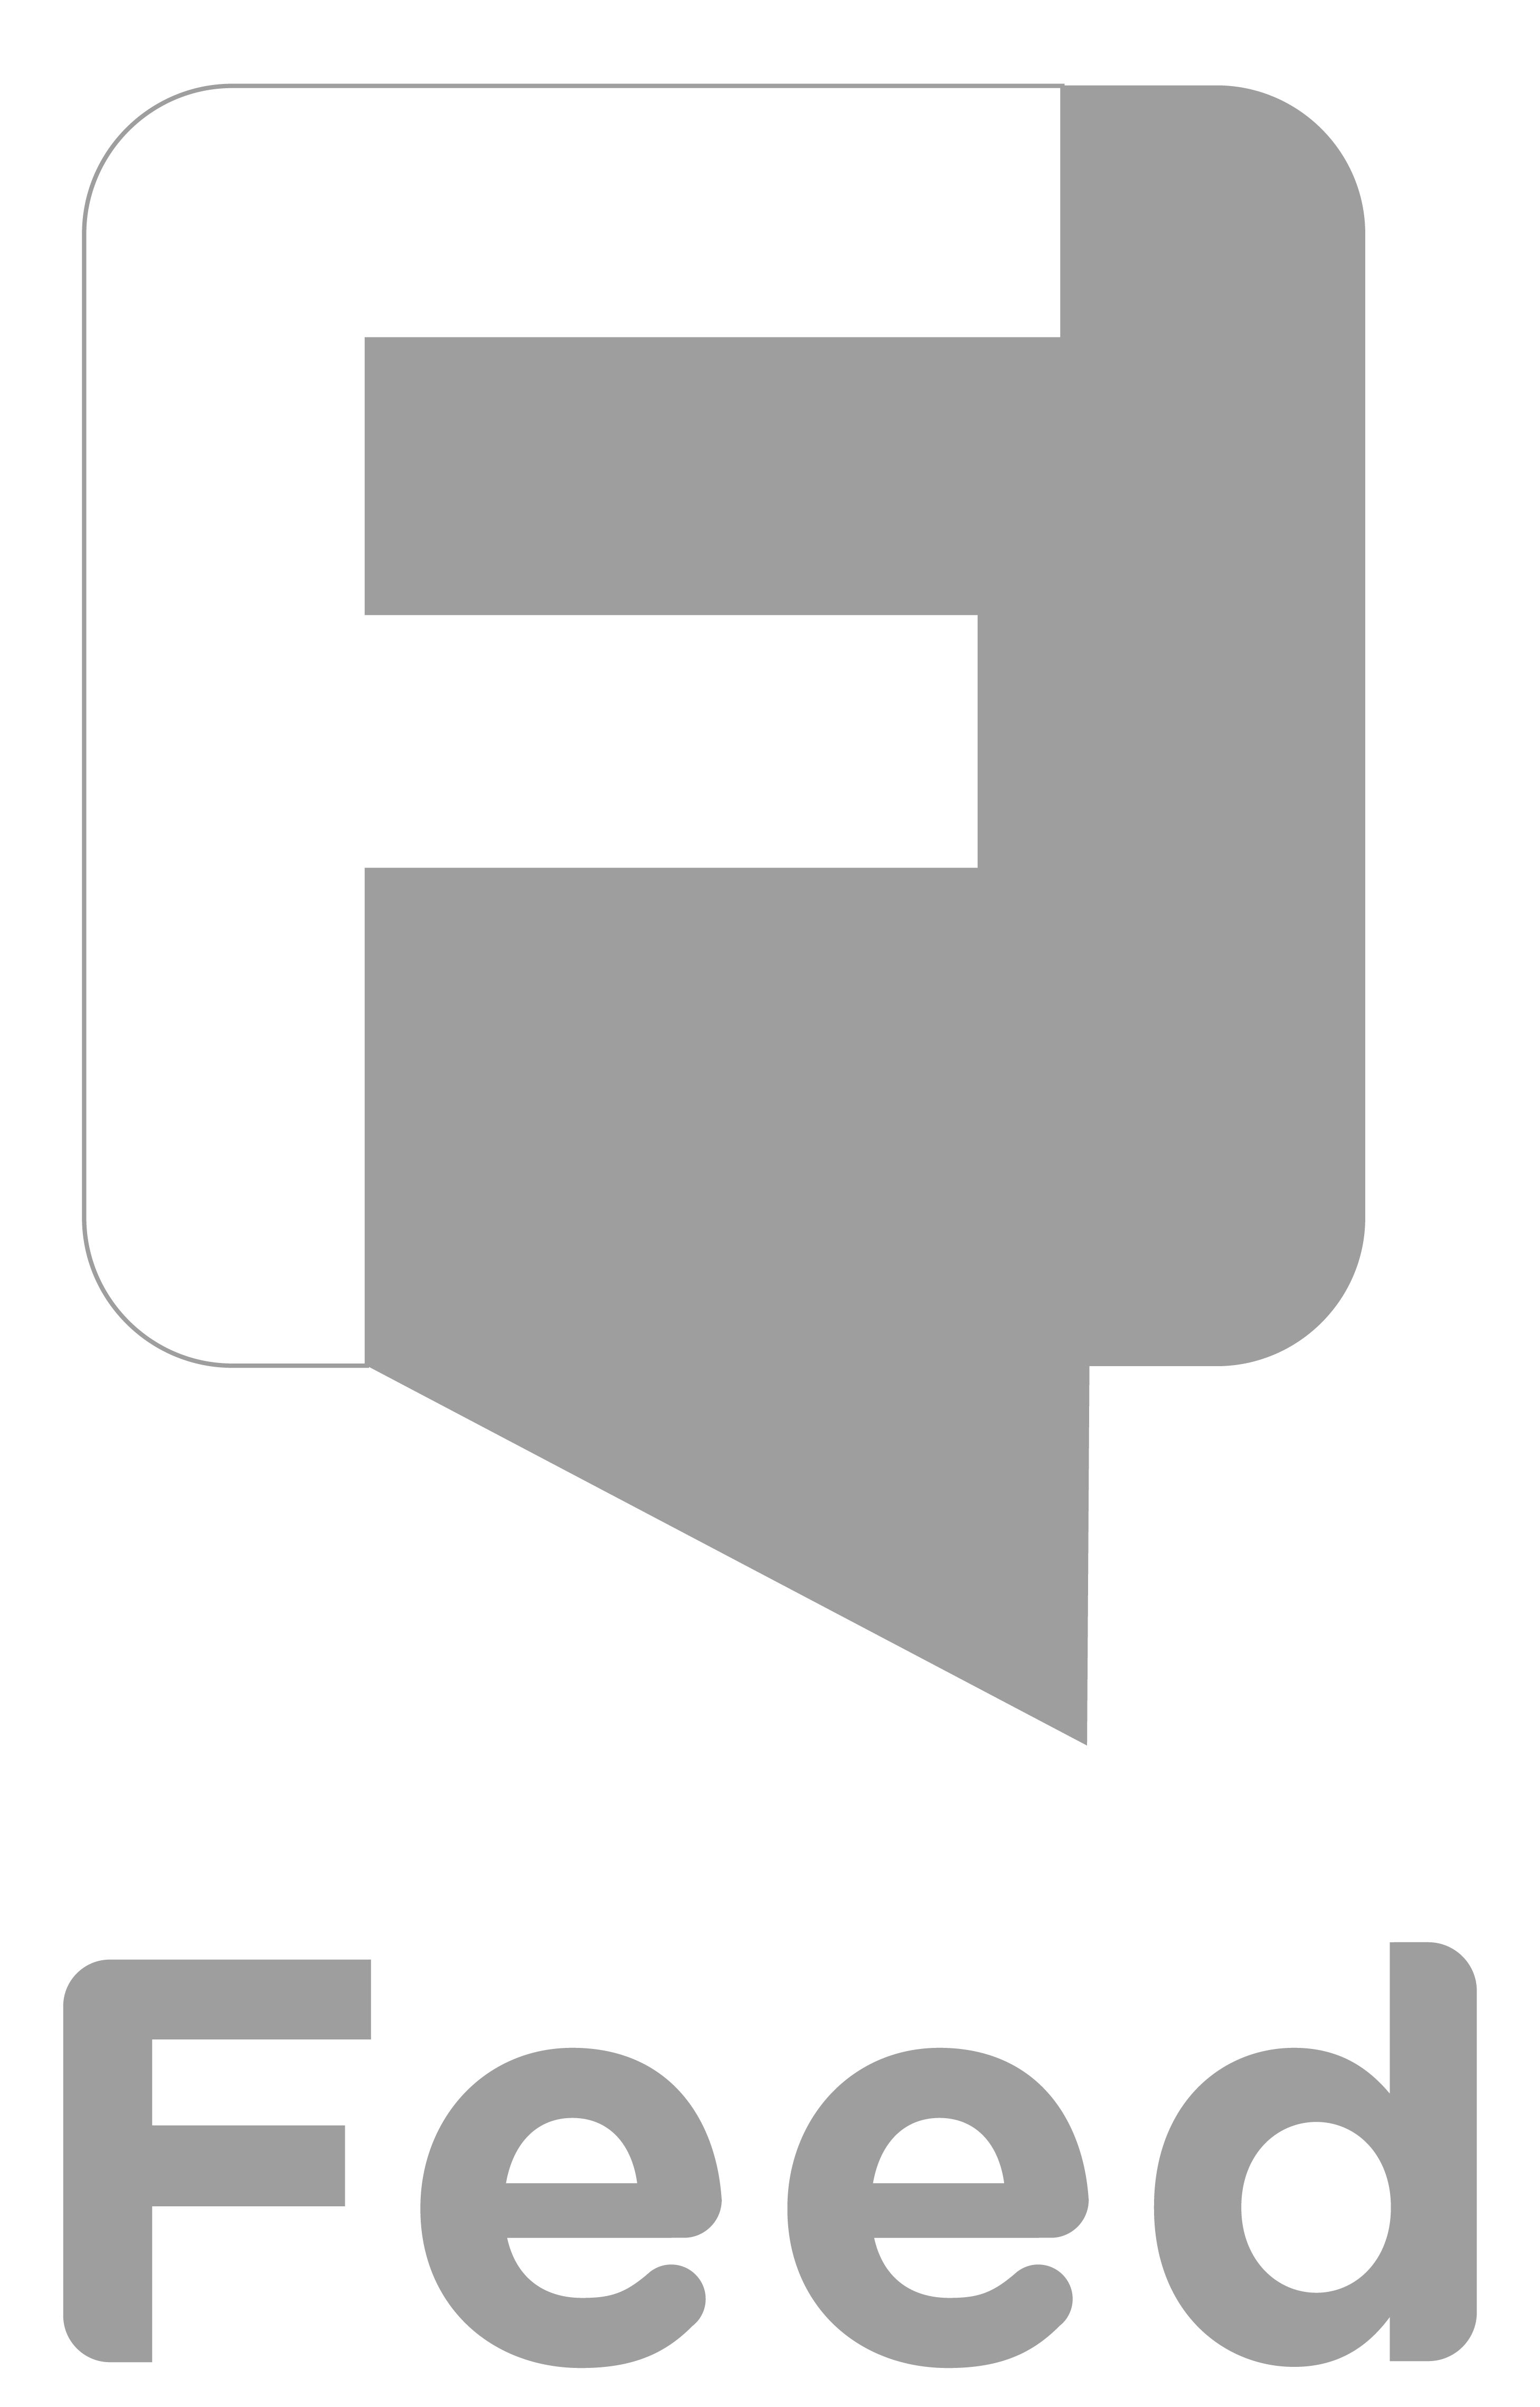 Feed logo gray